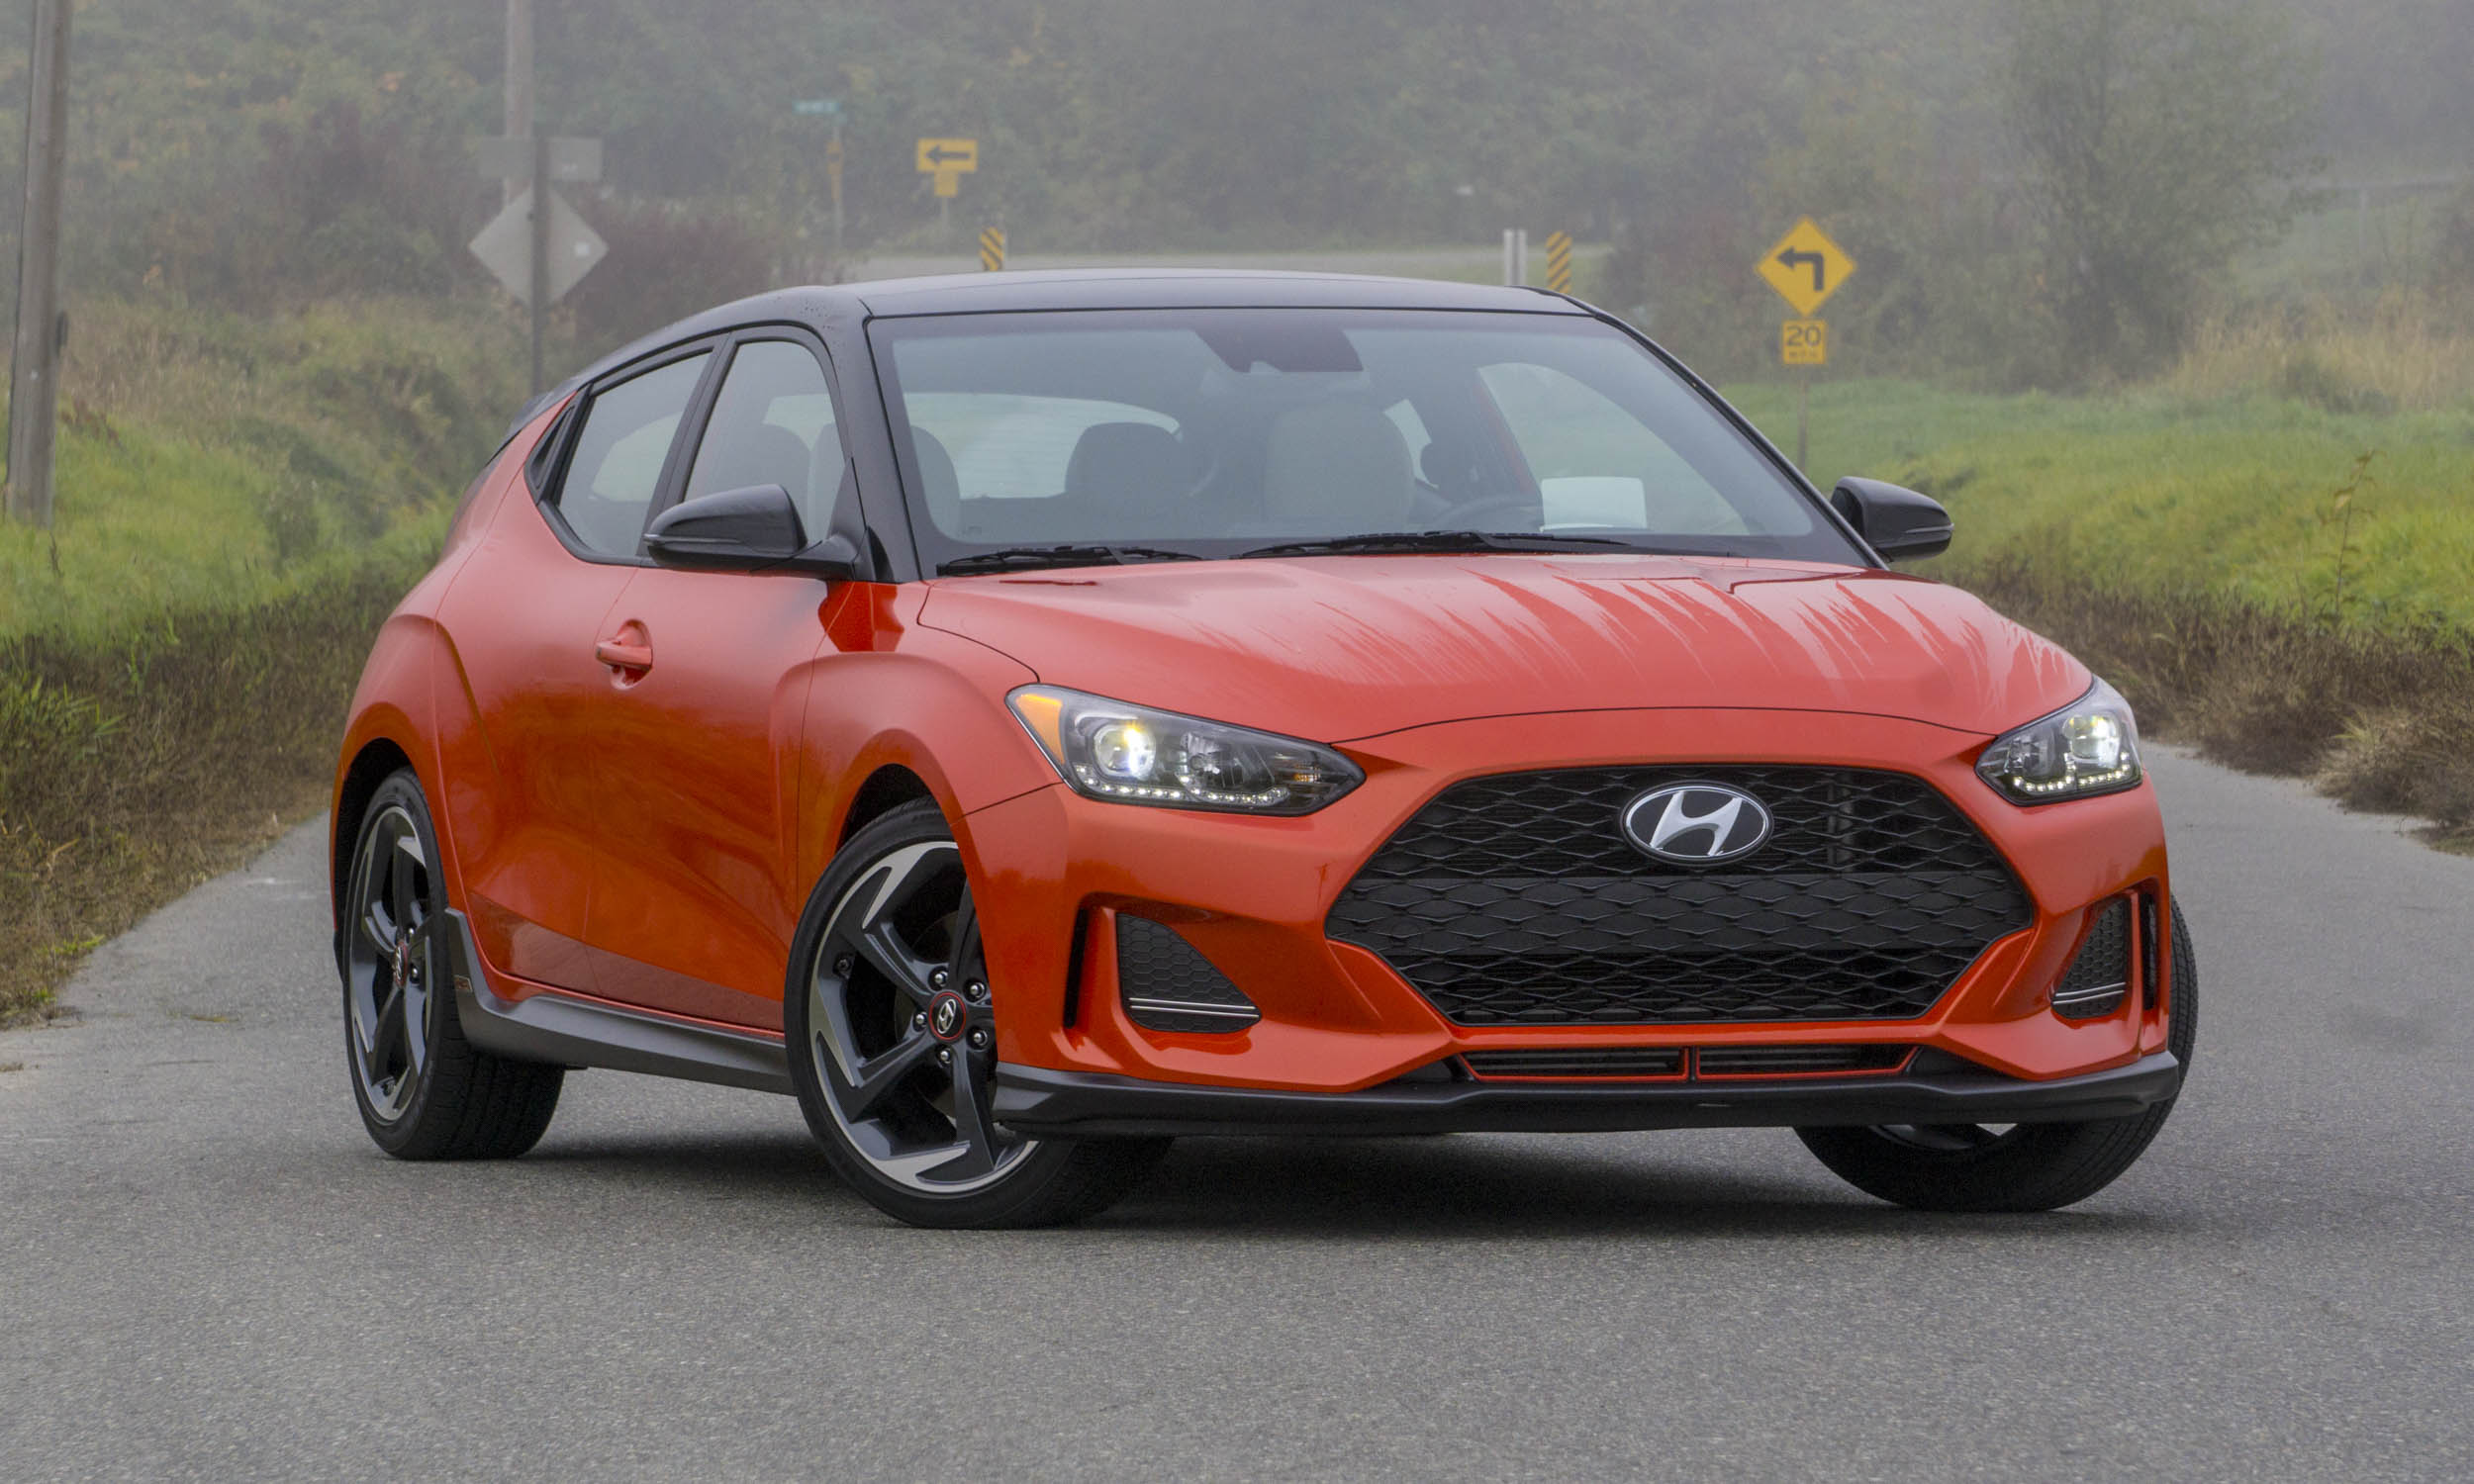 2019 Hyundai Veloster Turbo: Review - » AutoNXT